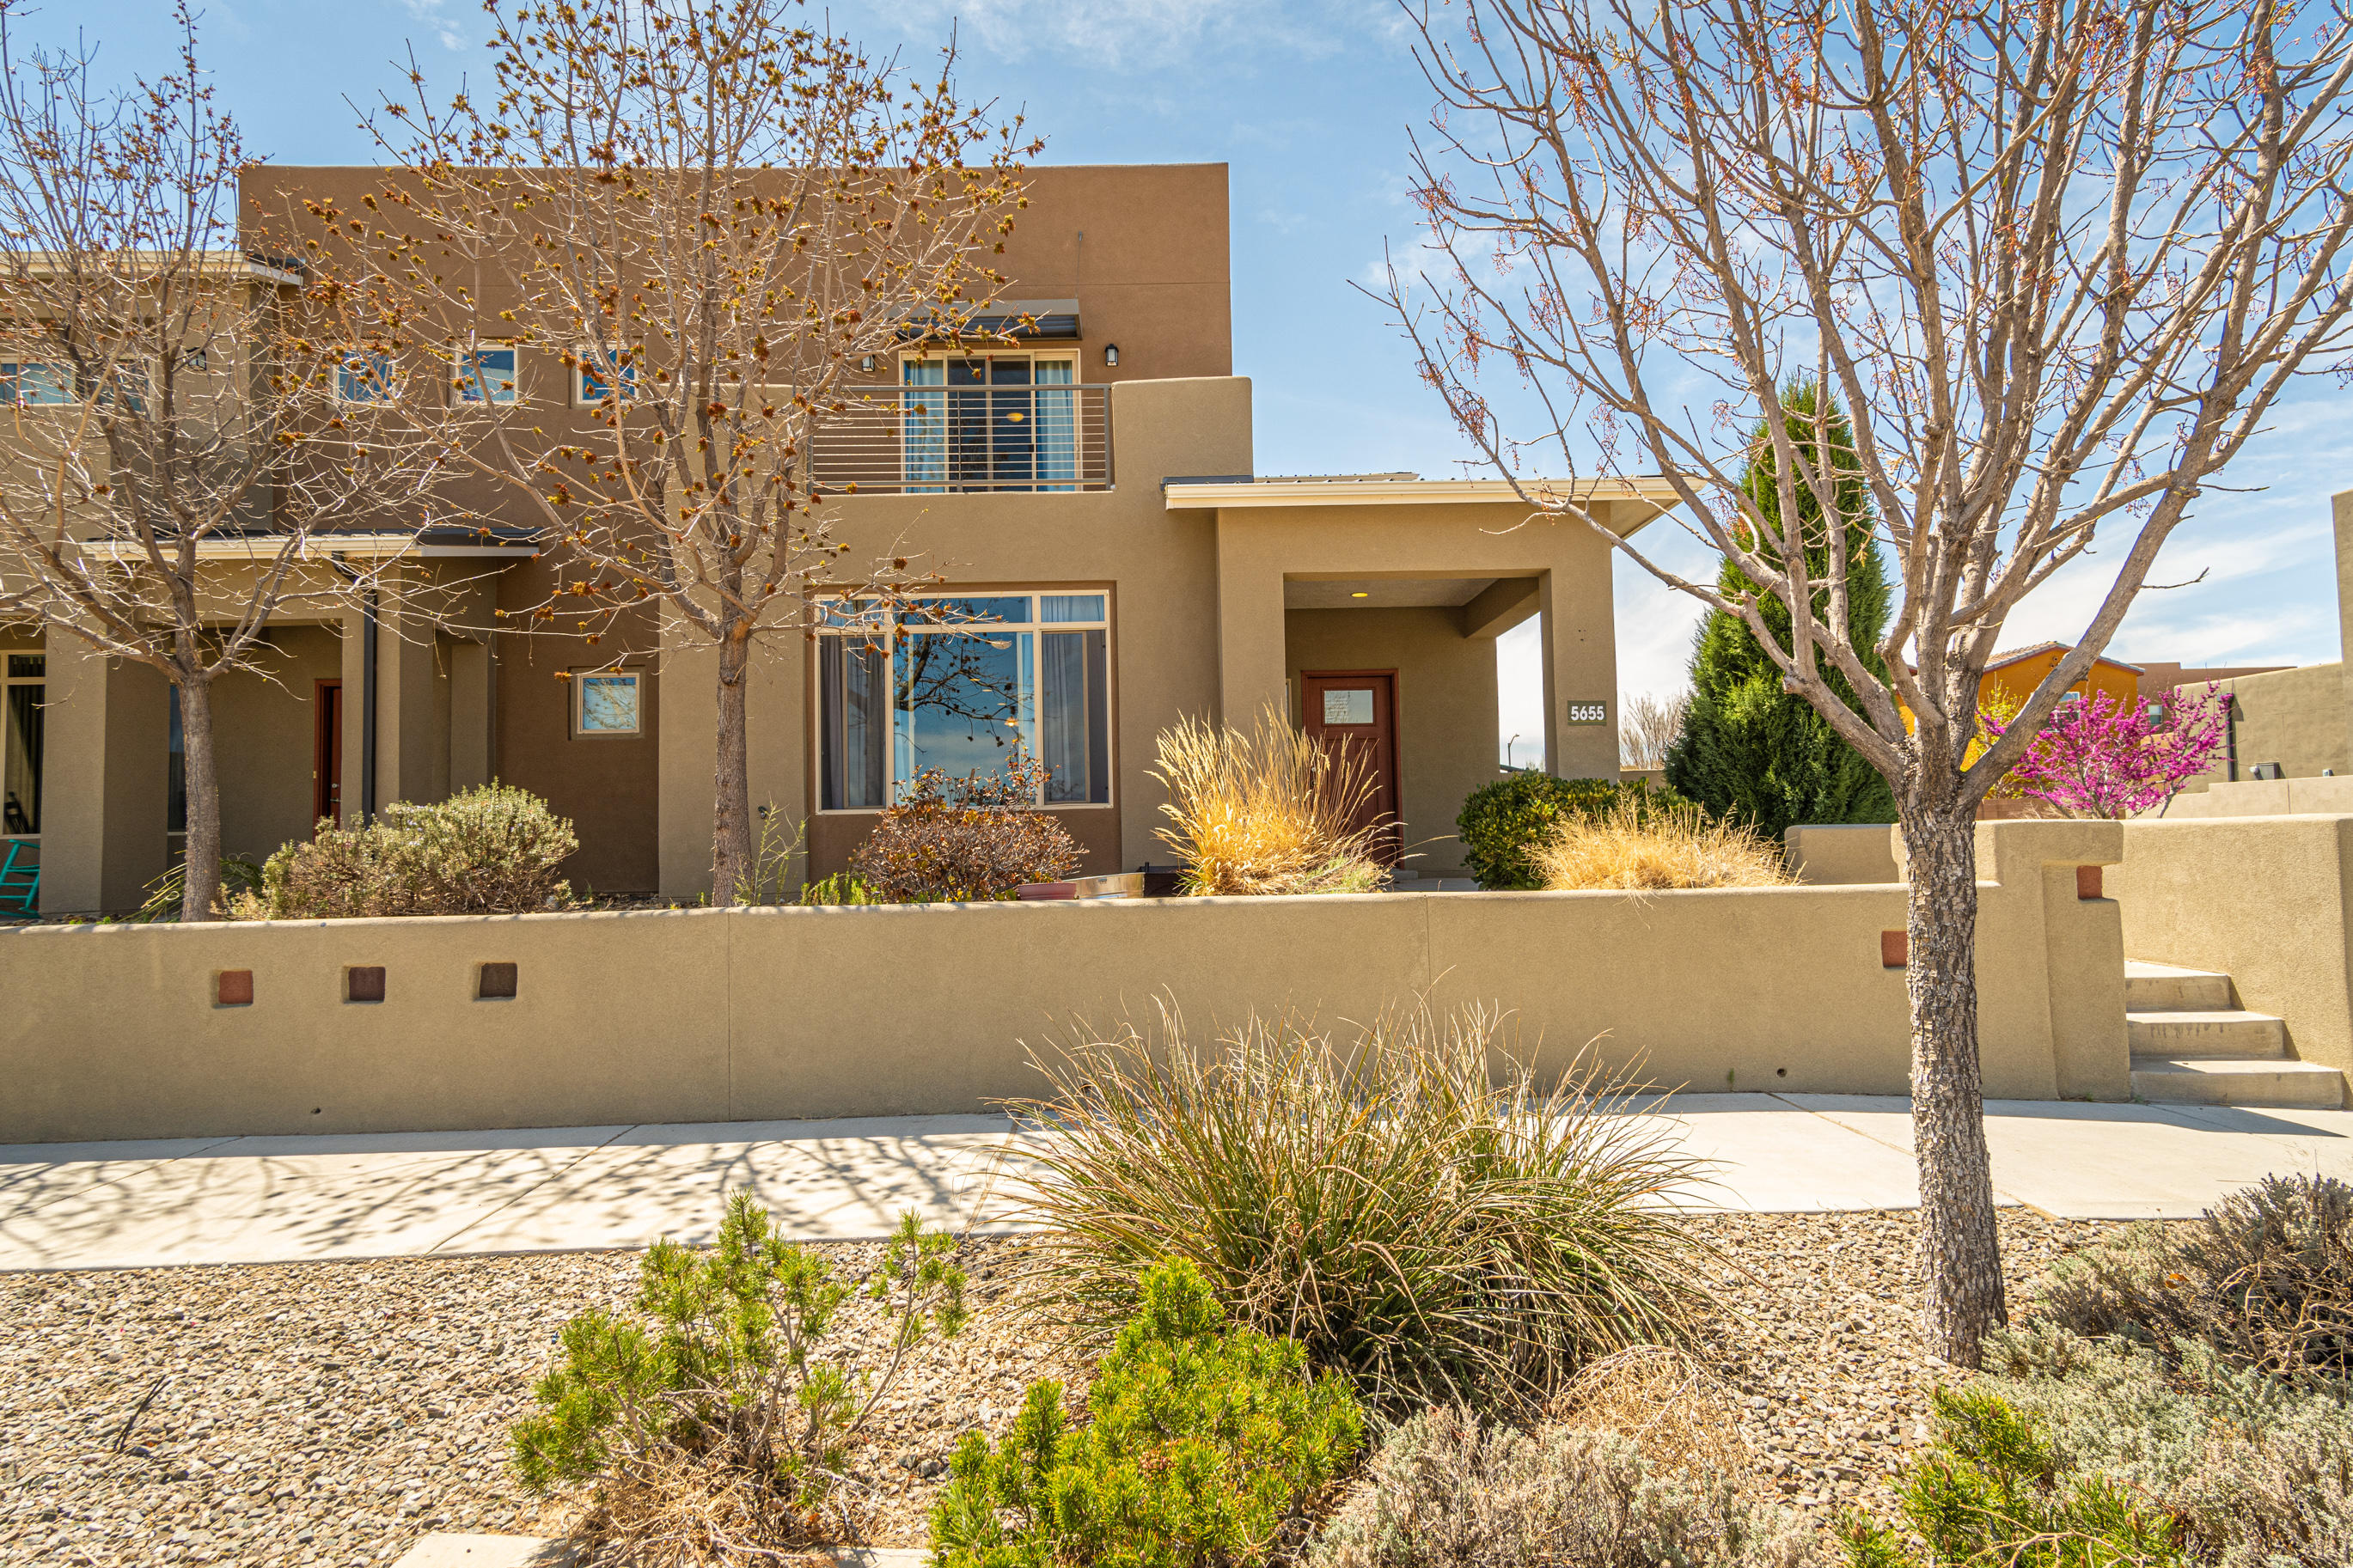 **Under contract taking back up offers. Beautiful, spacious home on a large corner lot in the quiet subdivision of Mesa del Sol! Open floor plan downstairs, enclosed office, and a large owner's suite make this home your perfect retreat. Enjoy a short walk to the community pool, park, & playground, hiking trails around the neighborhood, lunch at The Eatery, or enjoy a drink on your upstairs patio with a lovely view of the Sandia Mountains!